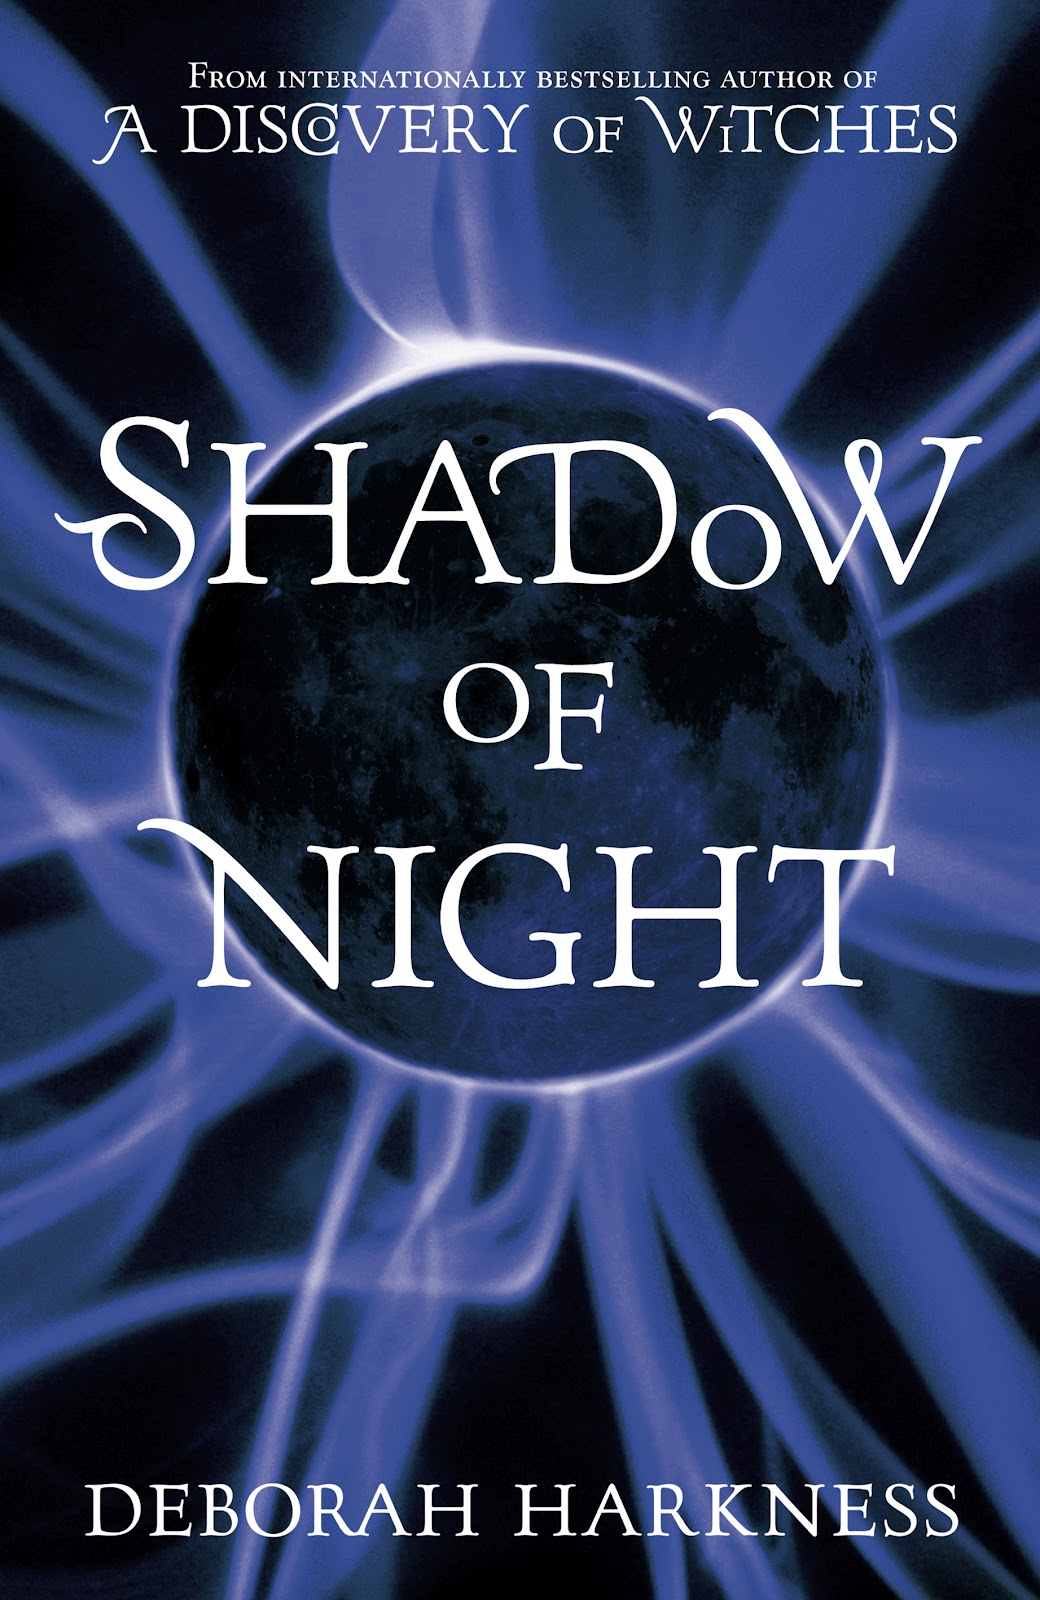 A Discovery Of Witches - Shadow Of Night (2012) -  Deborah Harkness